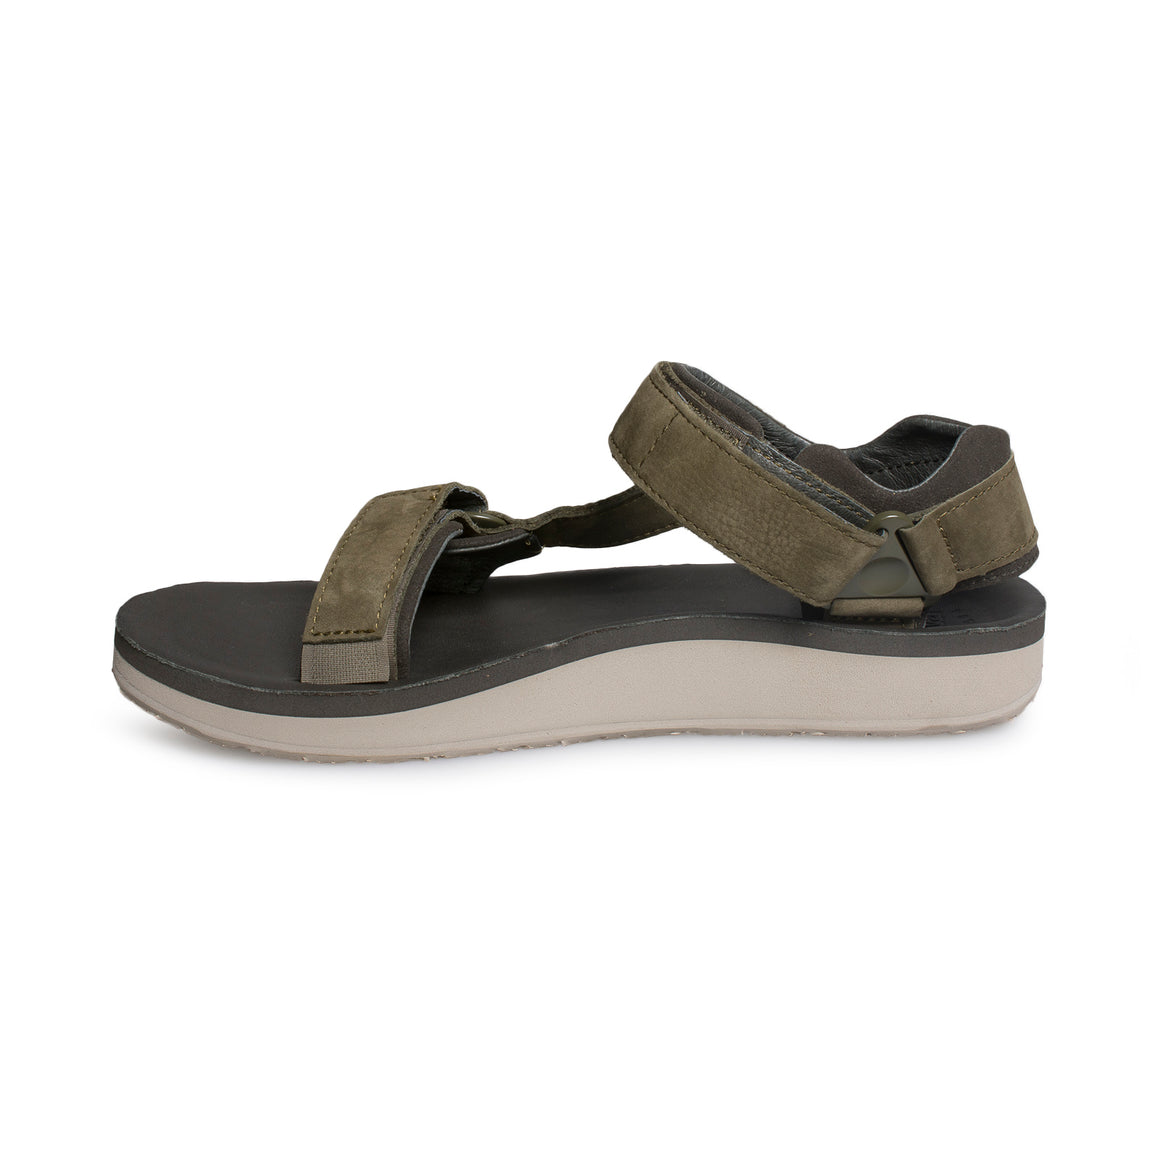 TEVA Original Universal Premier Leather Olive Sandals - Men's